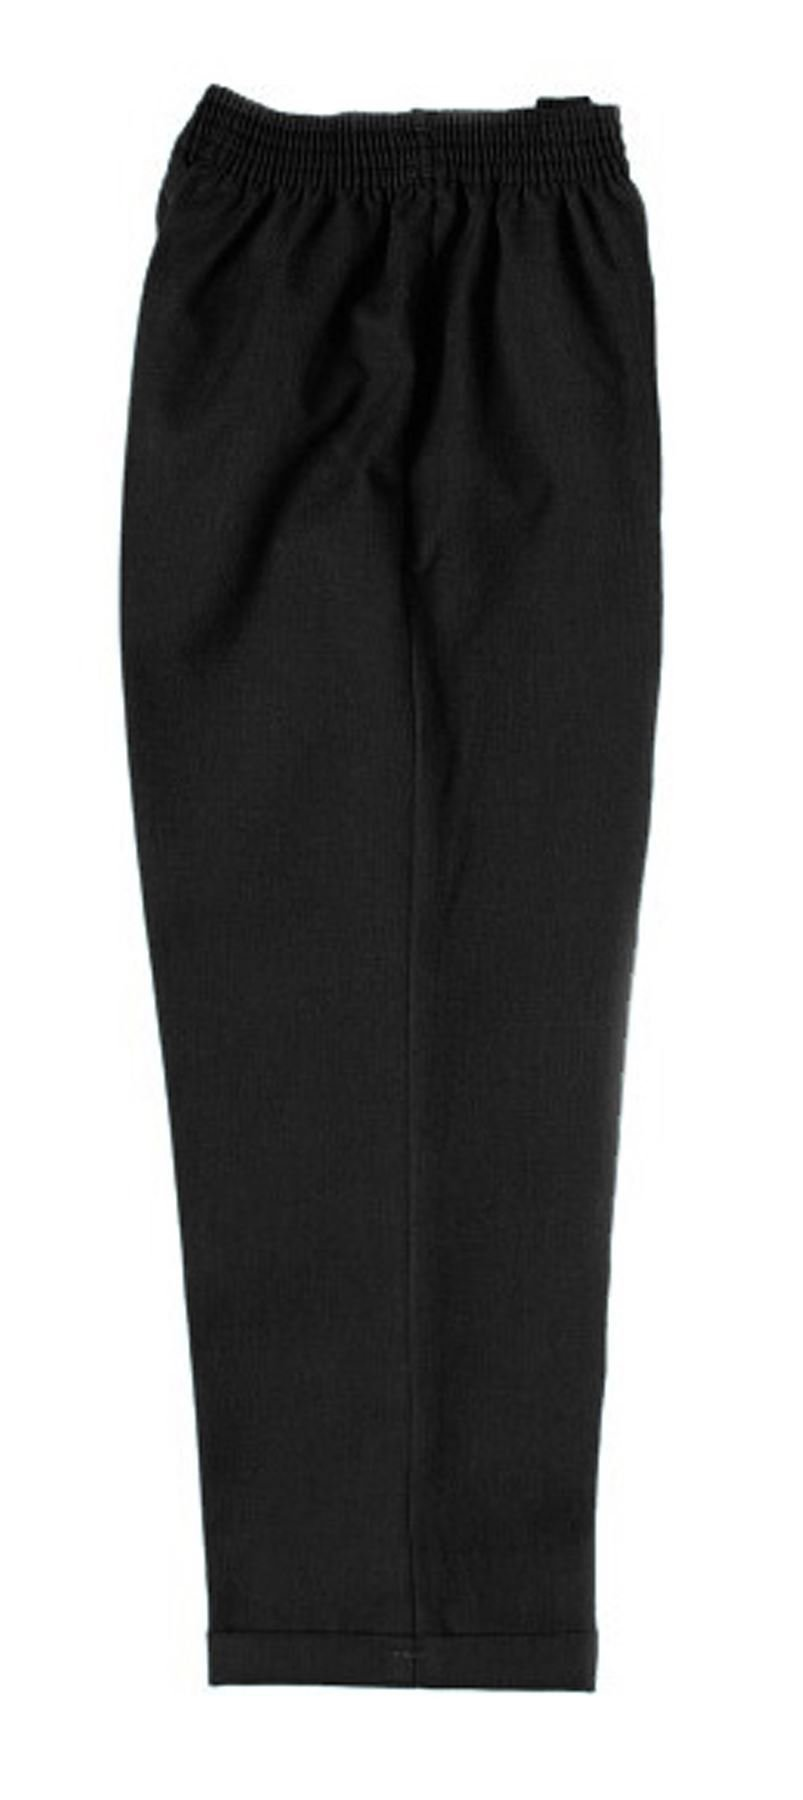 Pull Up Fully Elasticated School Trouser Black Age 7-8